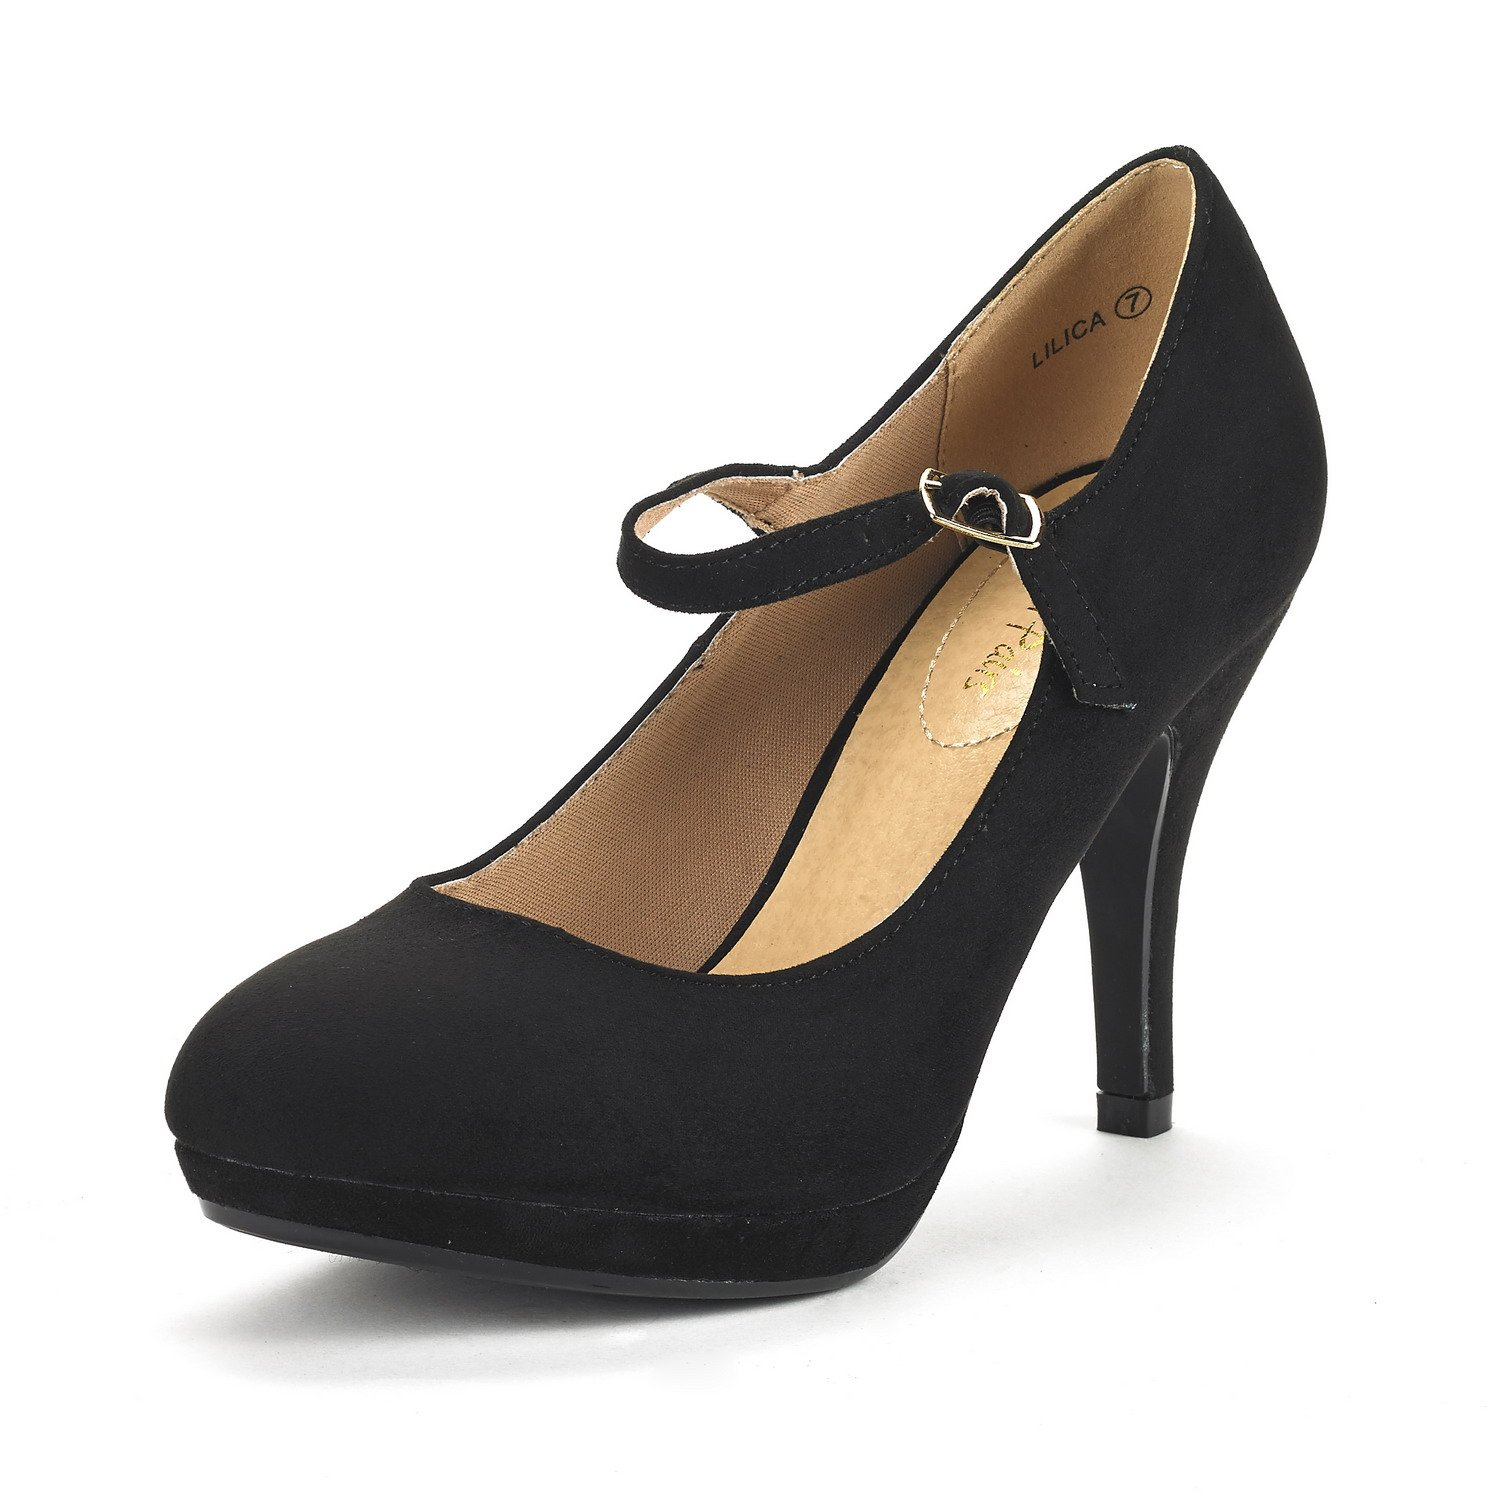 DREAM PAIRS Women's LILICA Black Suede Mary-Jane